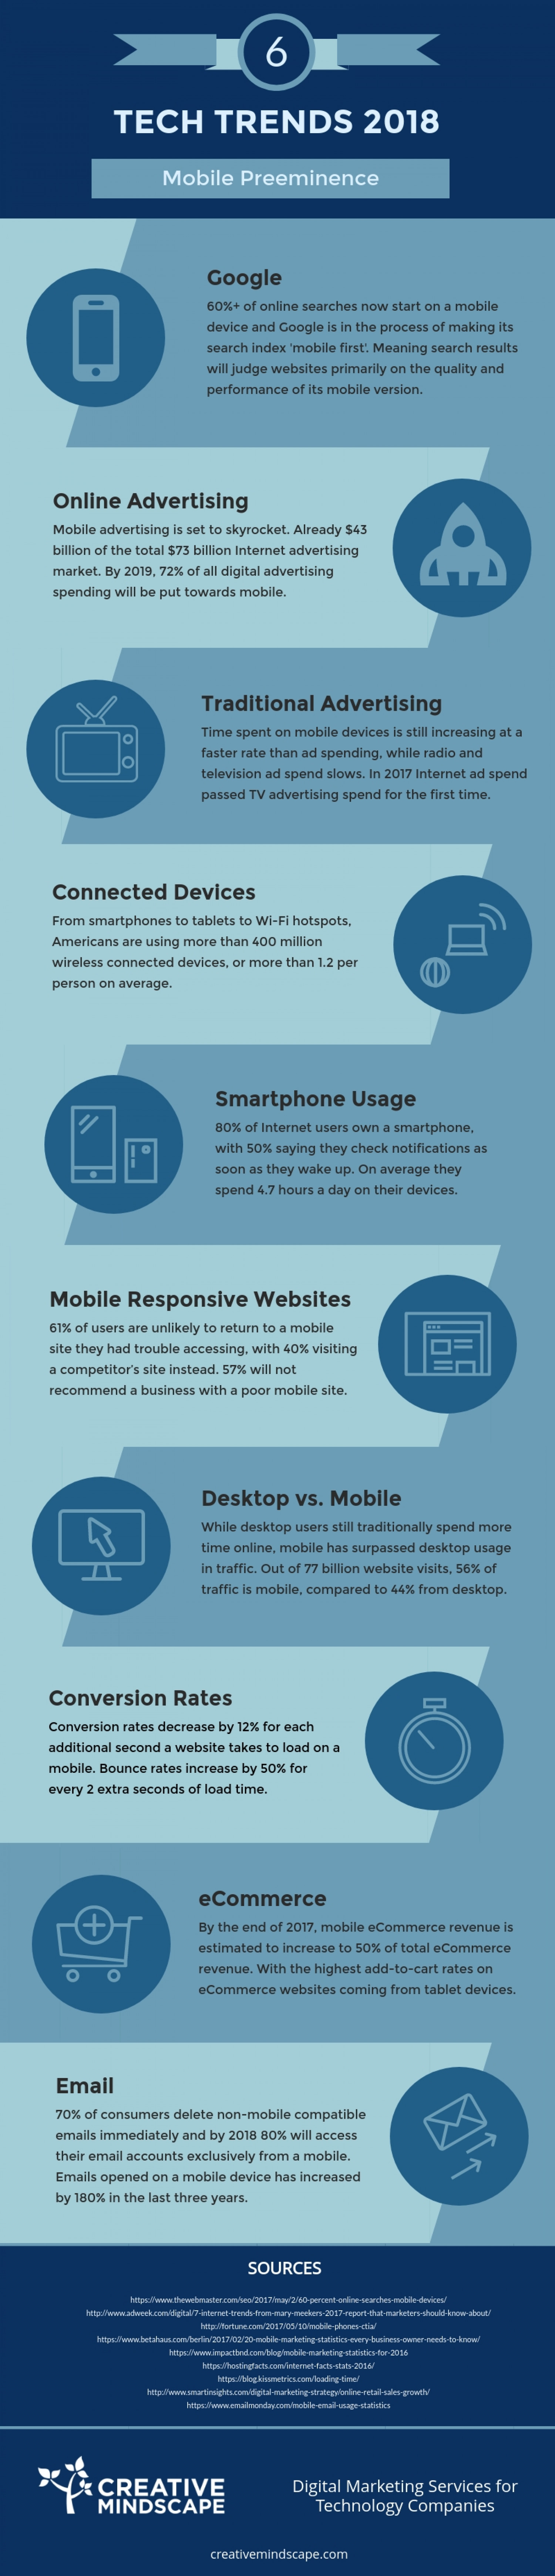 Top 10 Tech Trends 2018: No.6 Mobile Preeminence Infographic